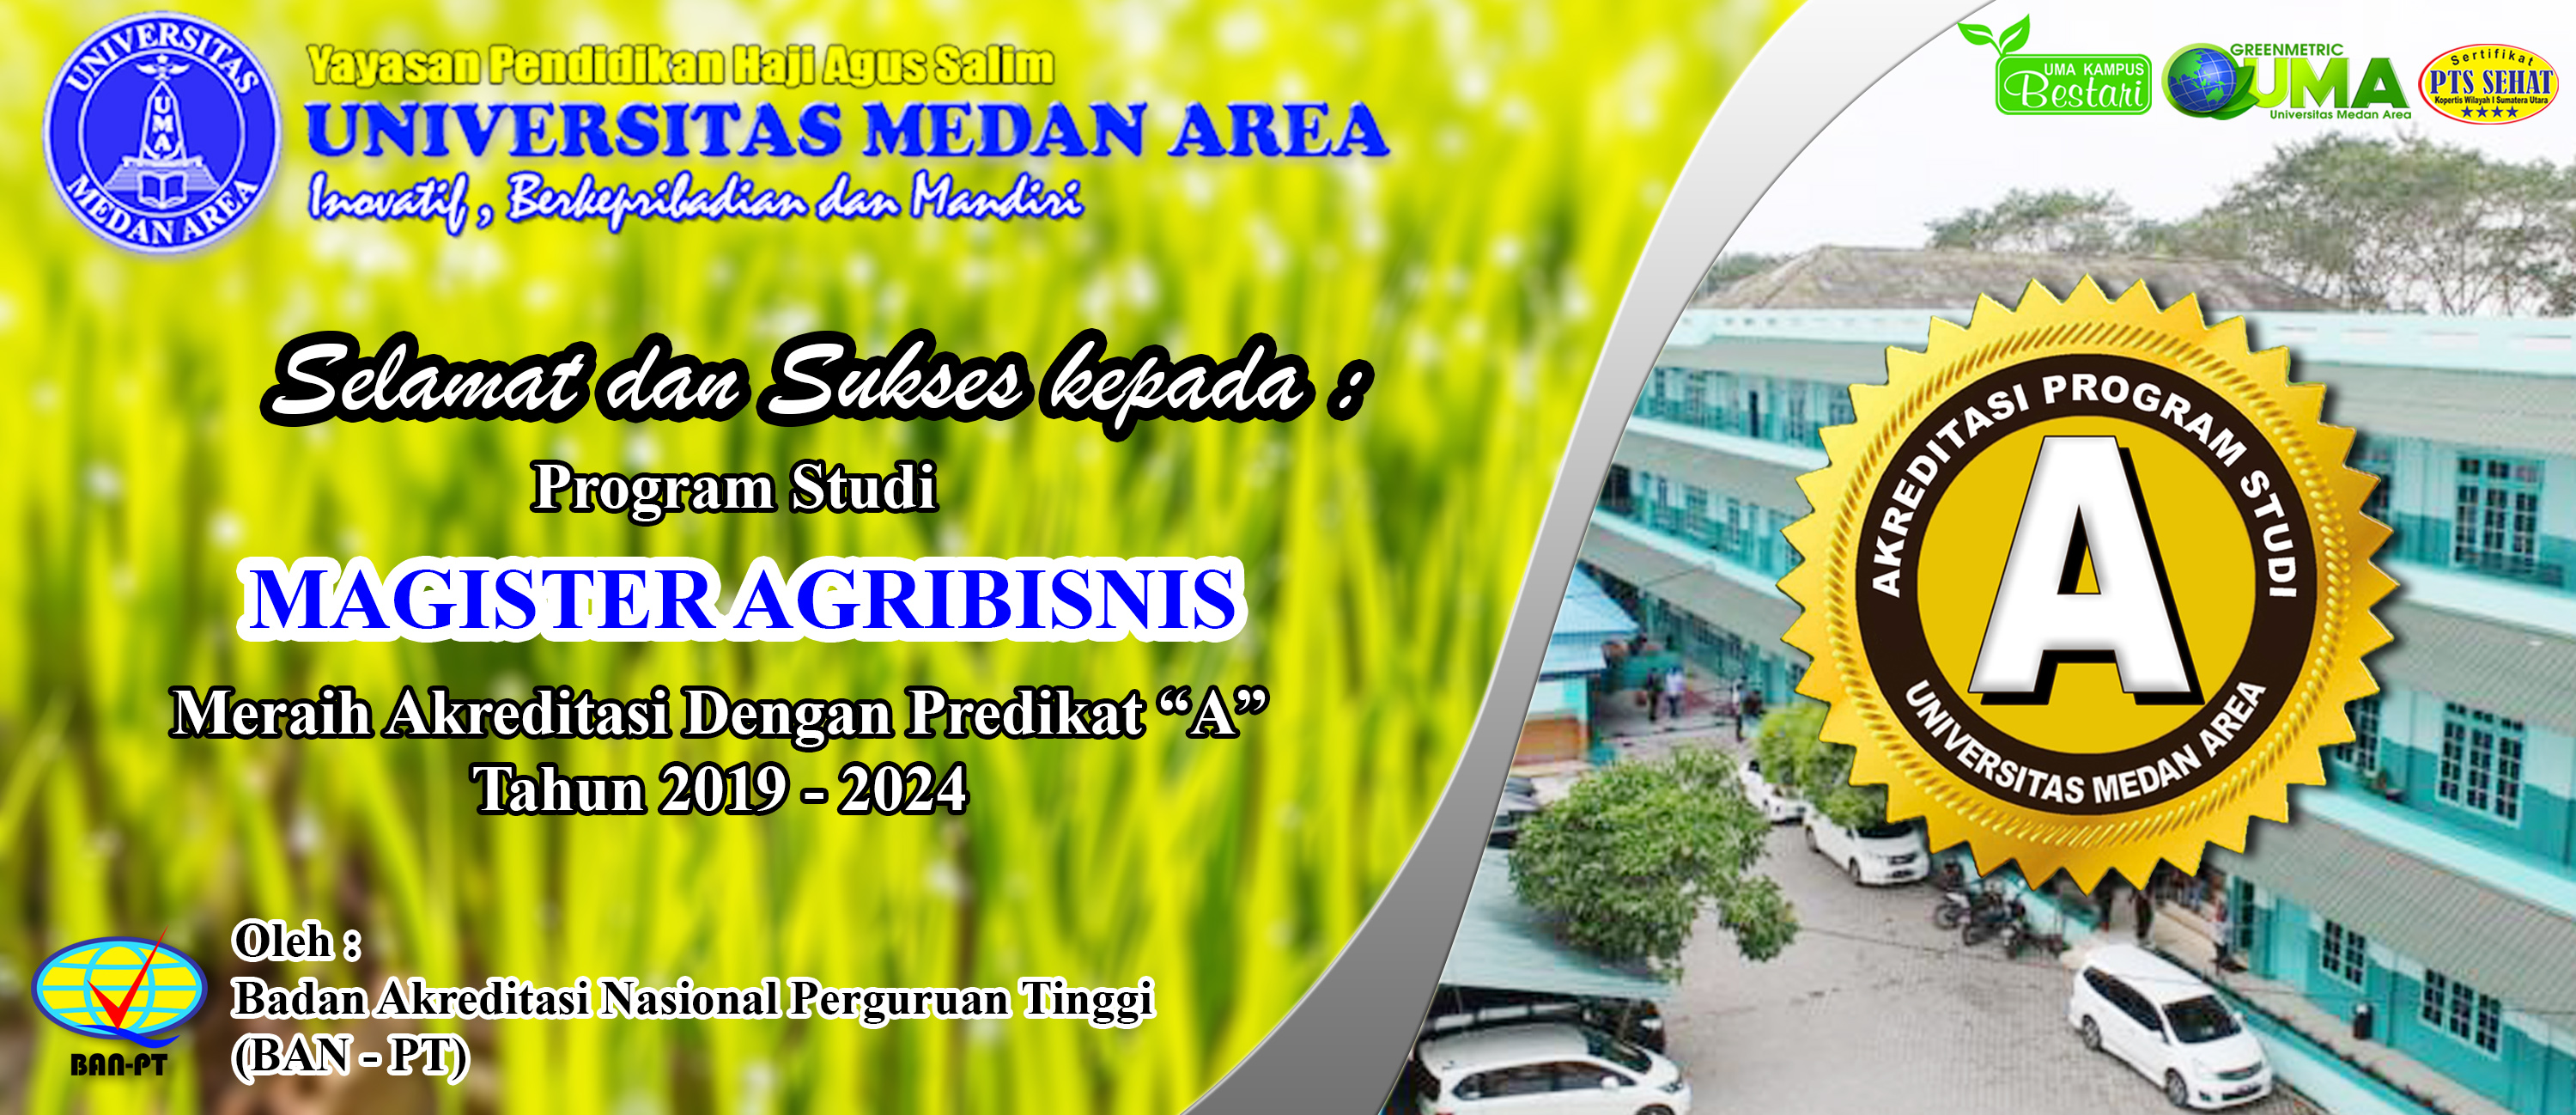 Program Studi Magister Agribisnis Universitas Medan Area Meraih Akreditasi A